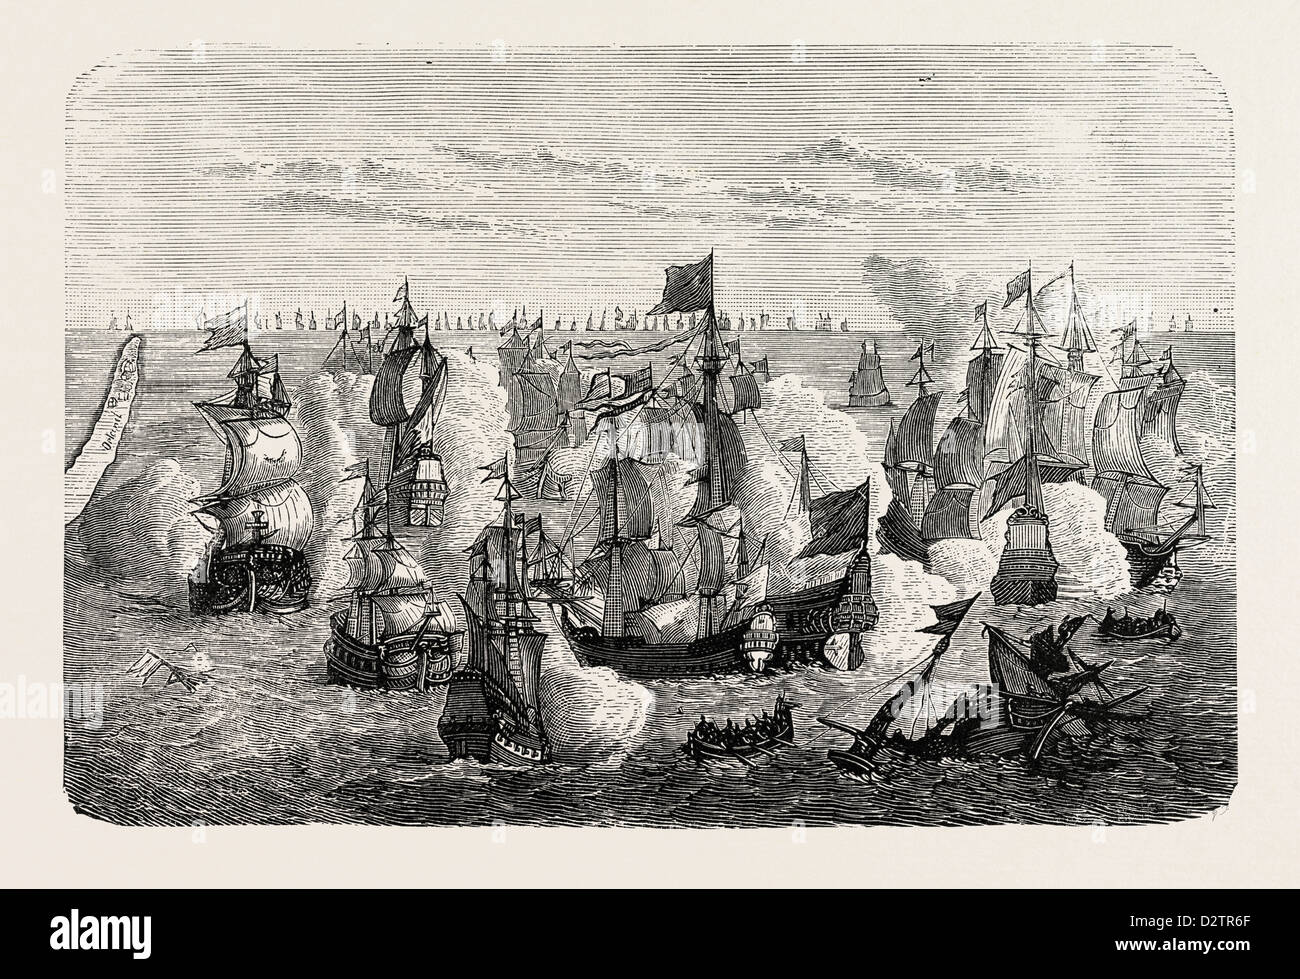 WARSHIPS OF THE COMMENCEMENT OF THE 15TH CENTURY. - Stock Image